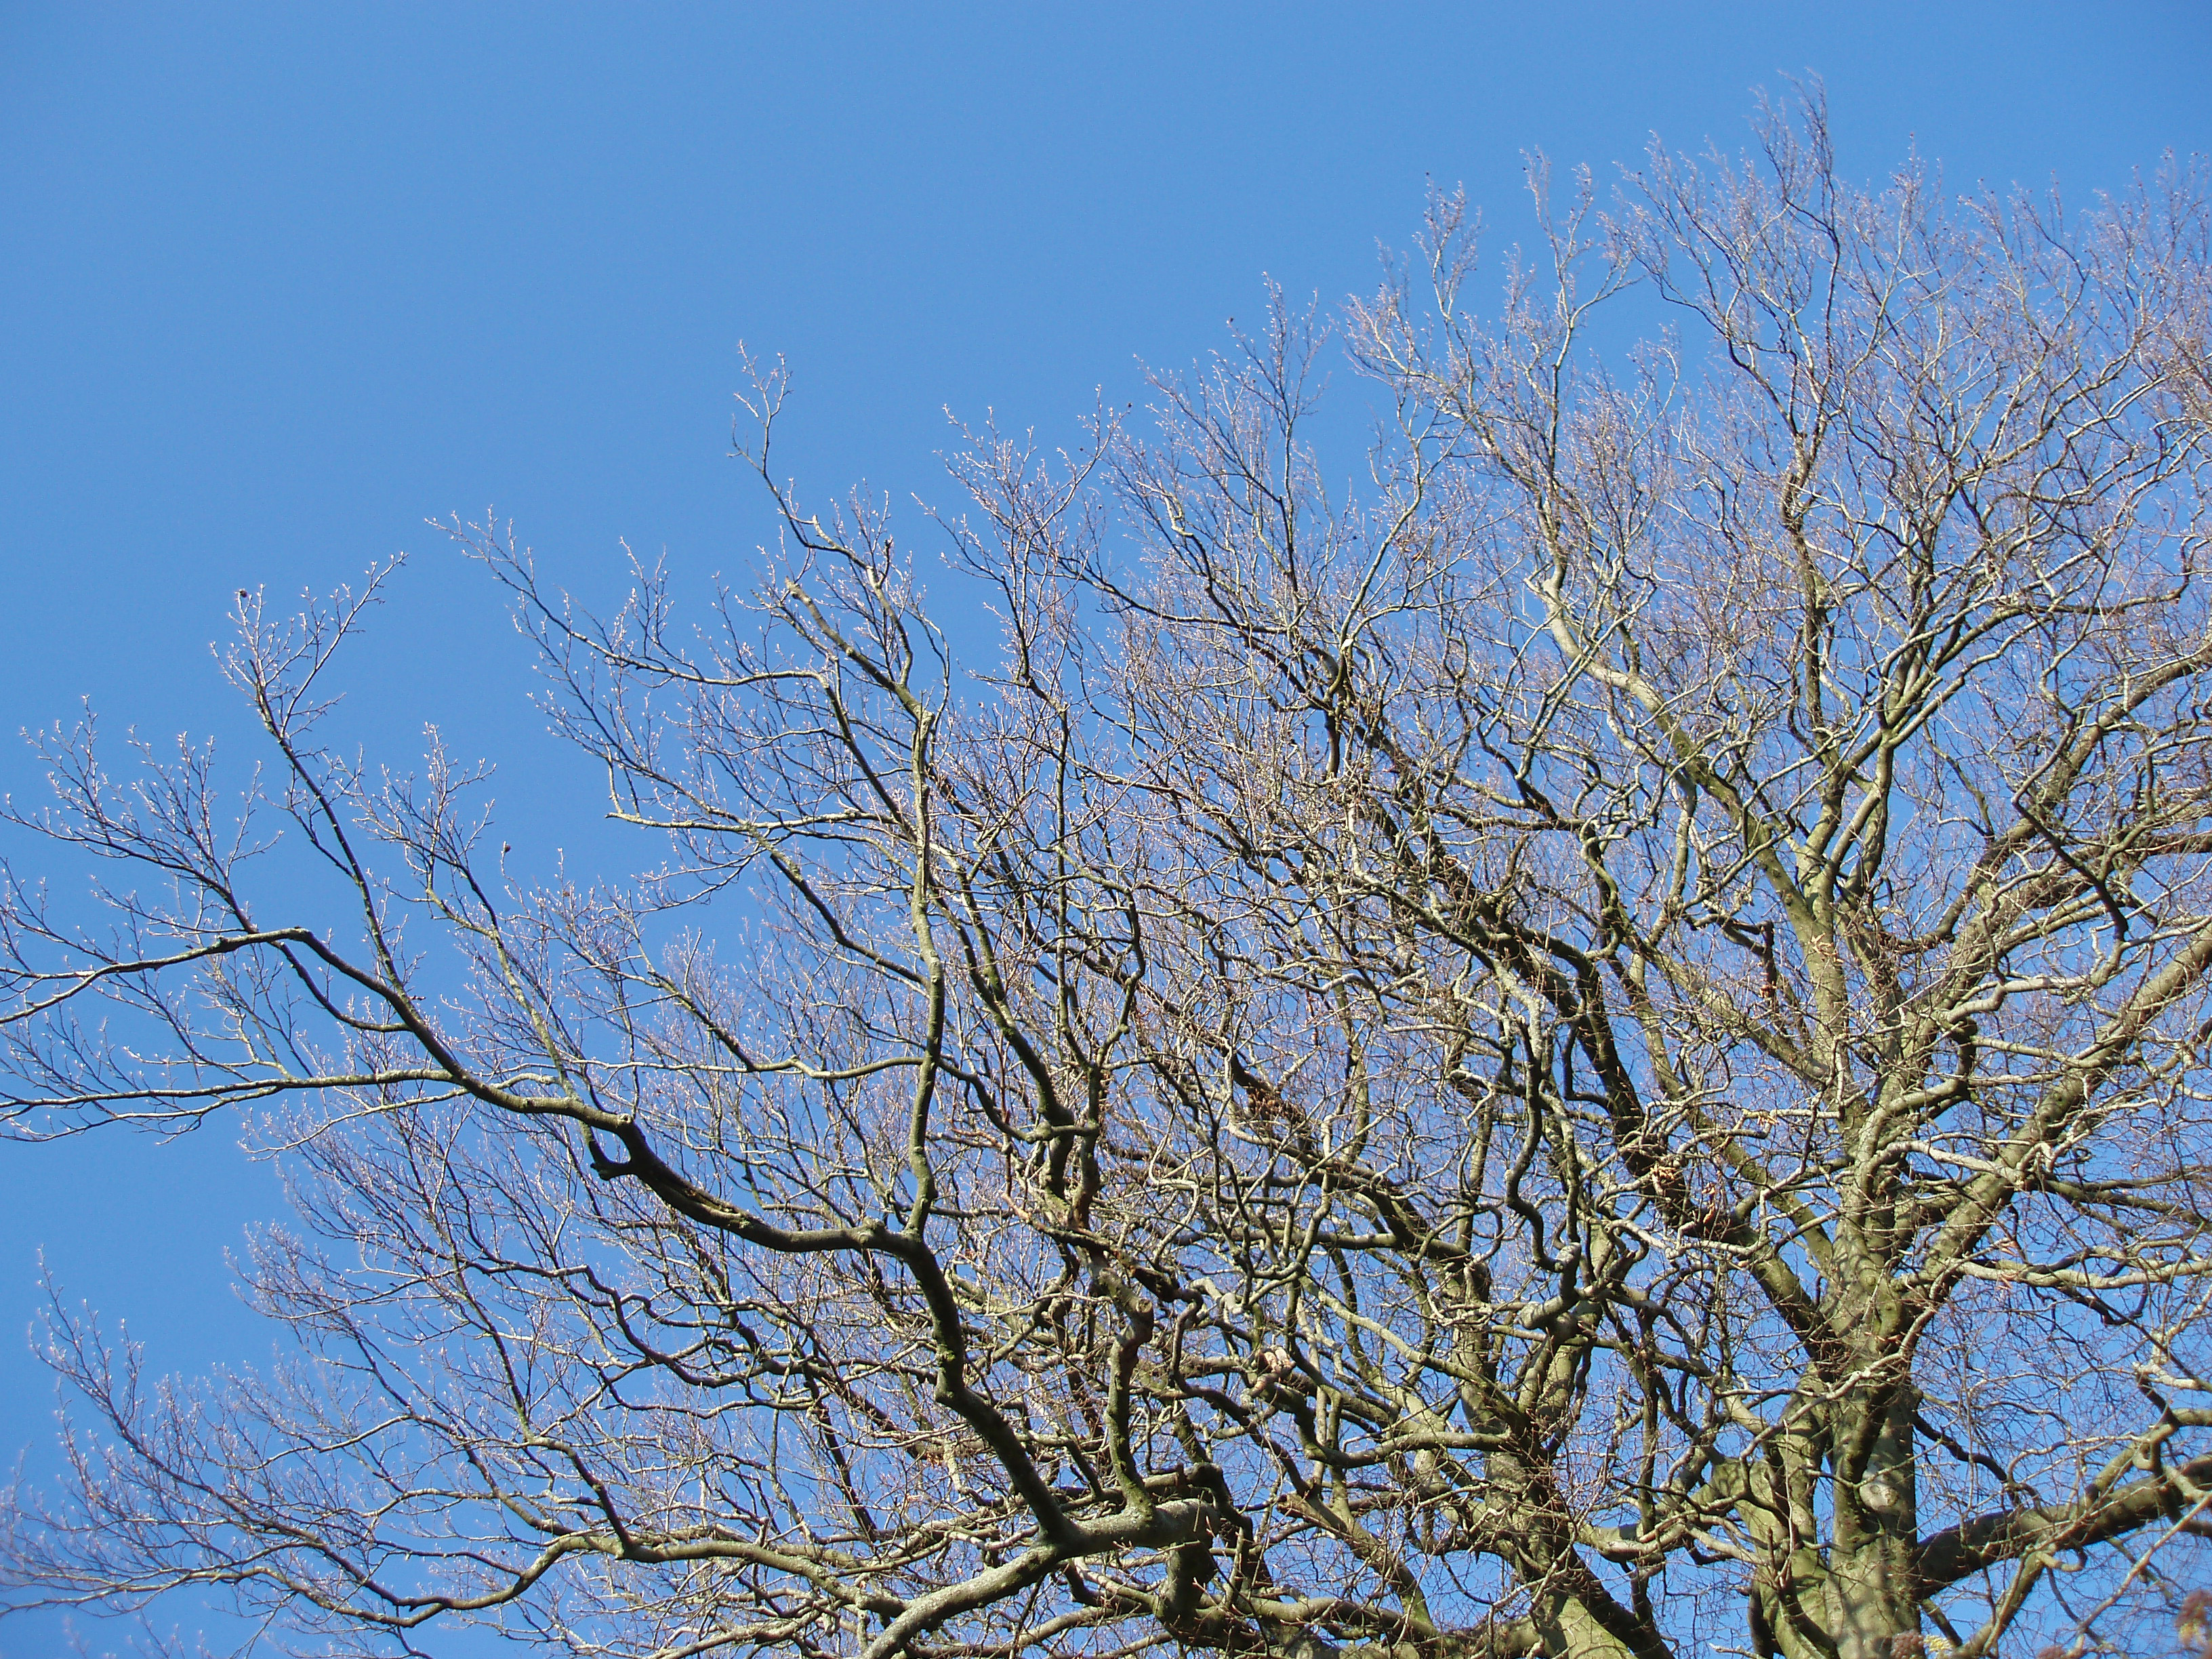 tree without leaves against a blue sky on a sunny day